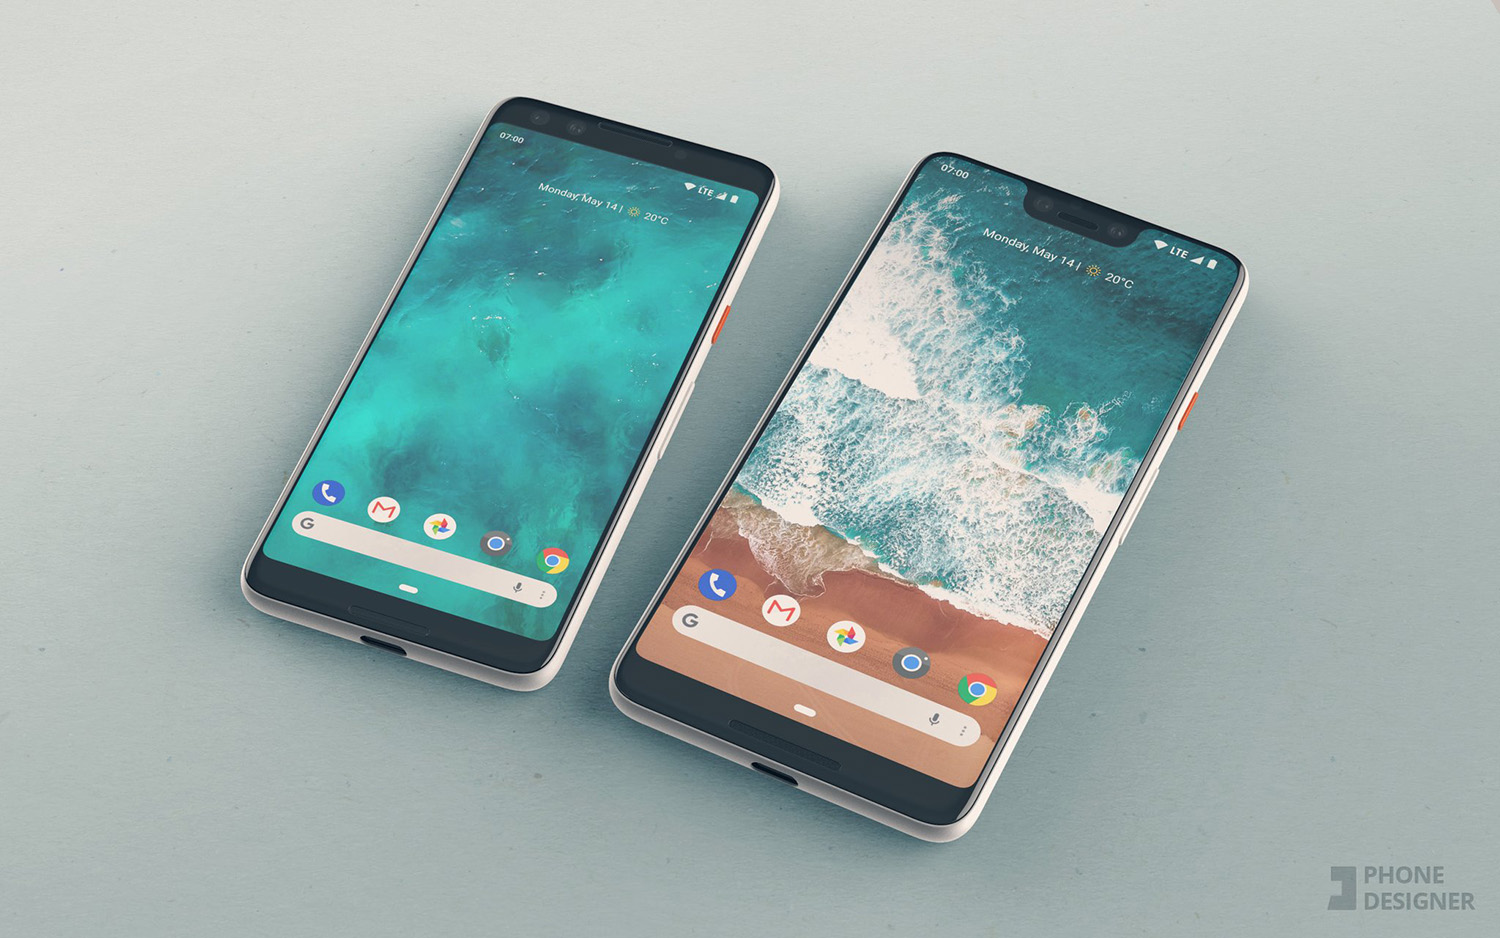 Iphone X Notch Wallpaper Reddit If The Google Pixel 3 And Pixel 3 Xl Look Like These